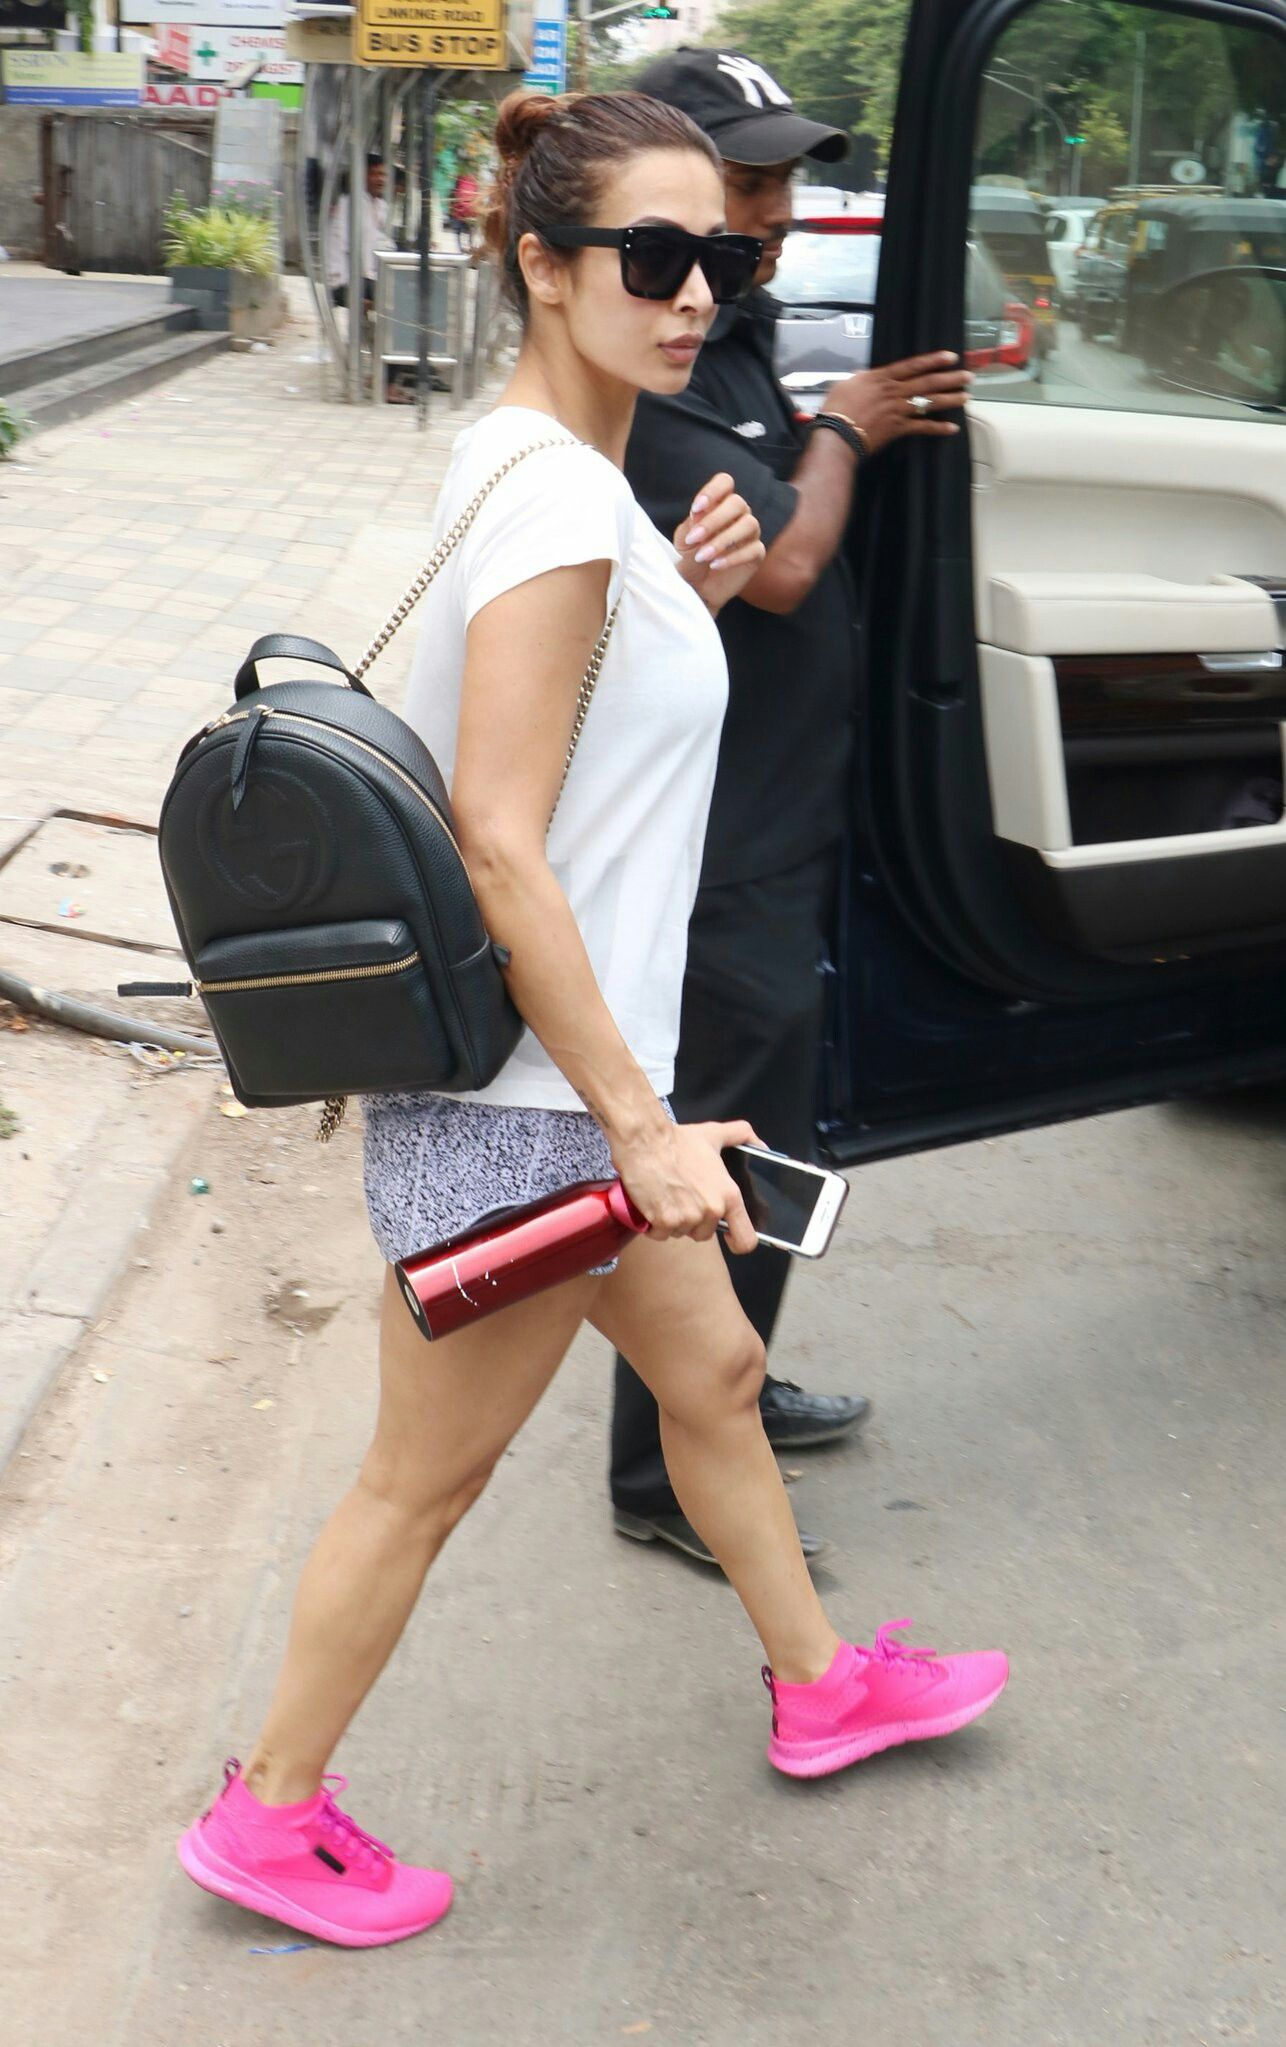 Pin By Manoj On Malaikaaa1 Clothes For Women Celebrity Look Fashion